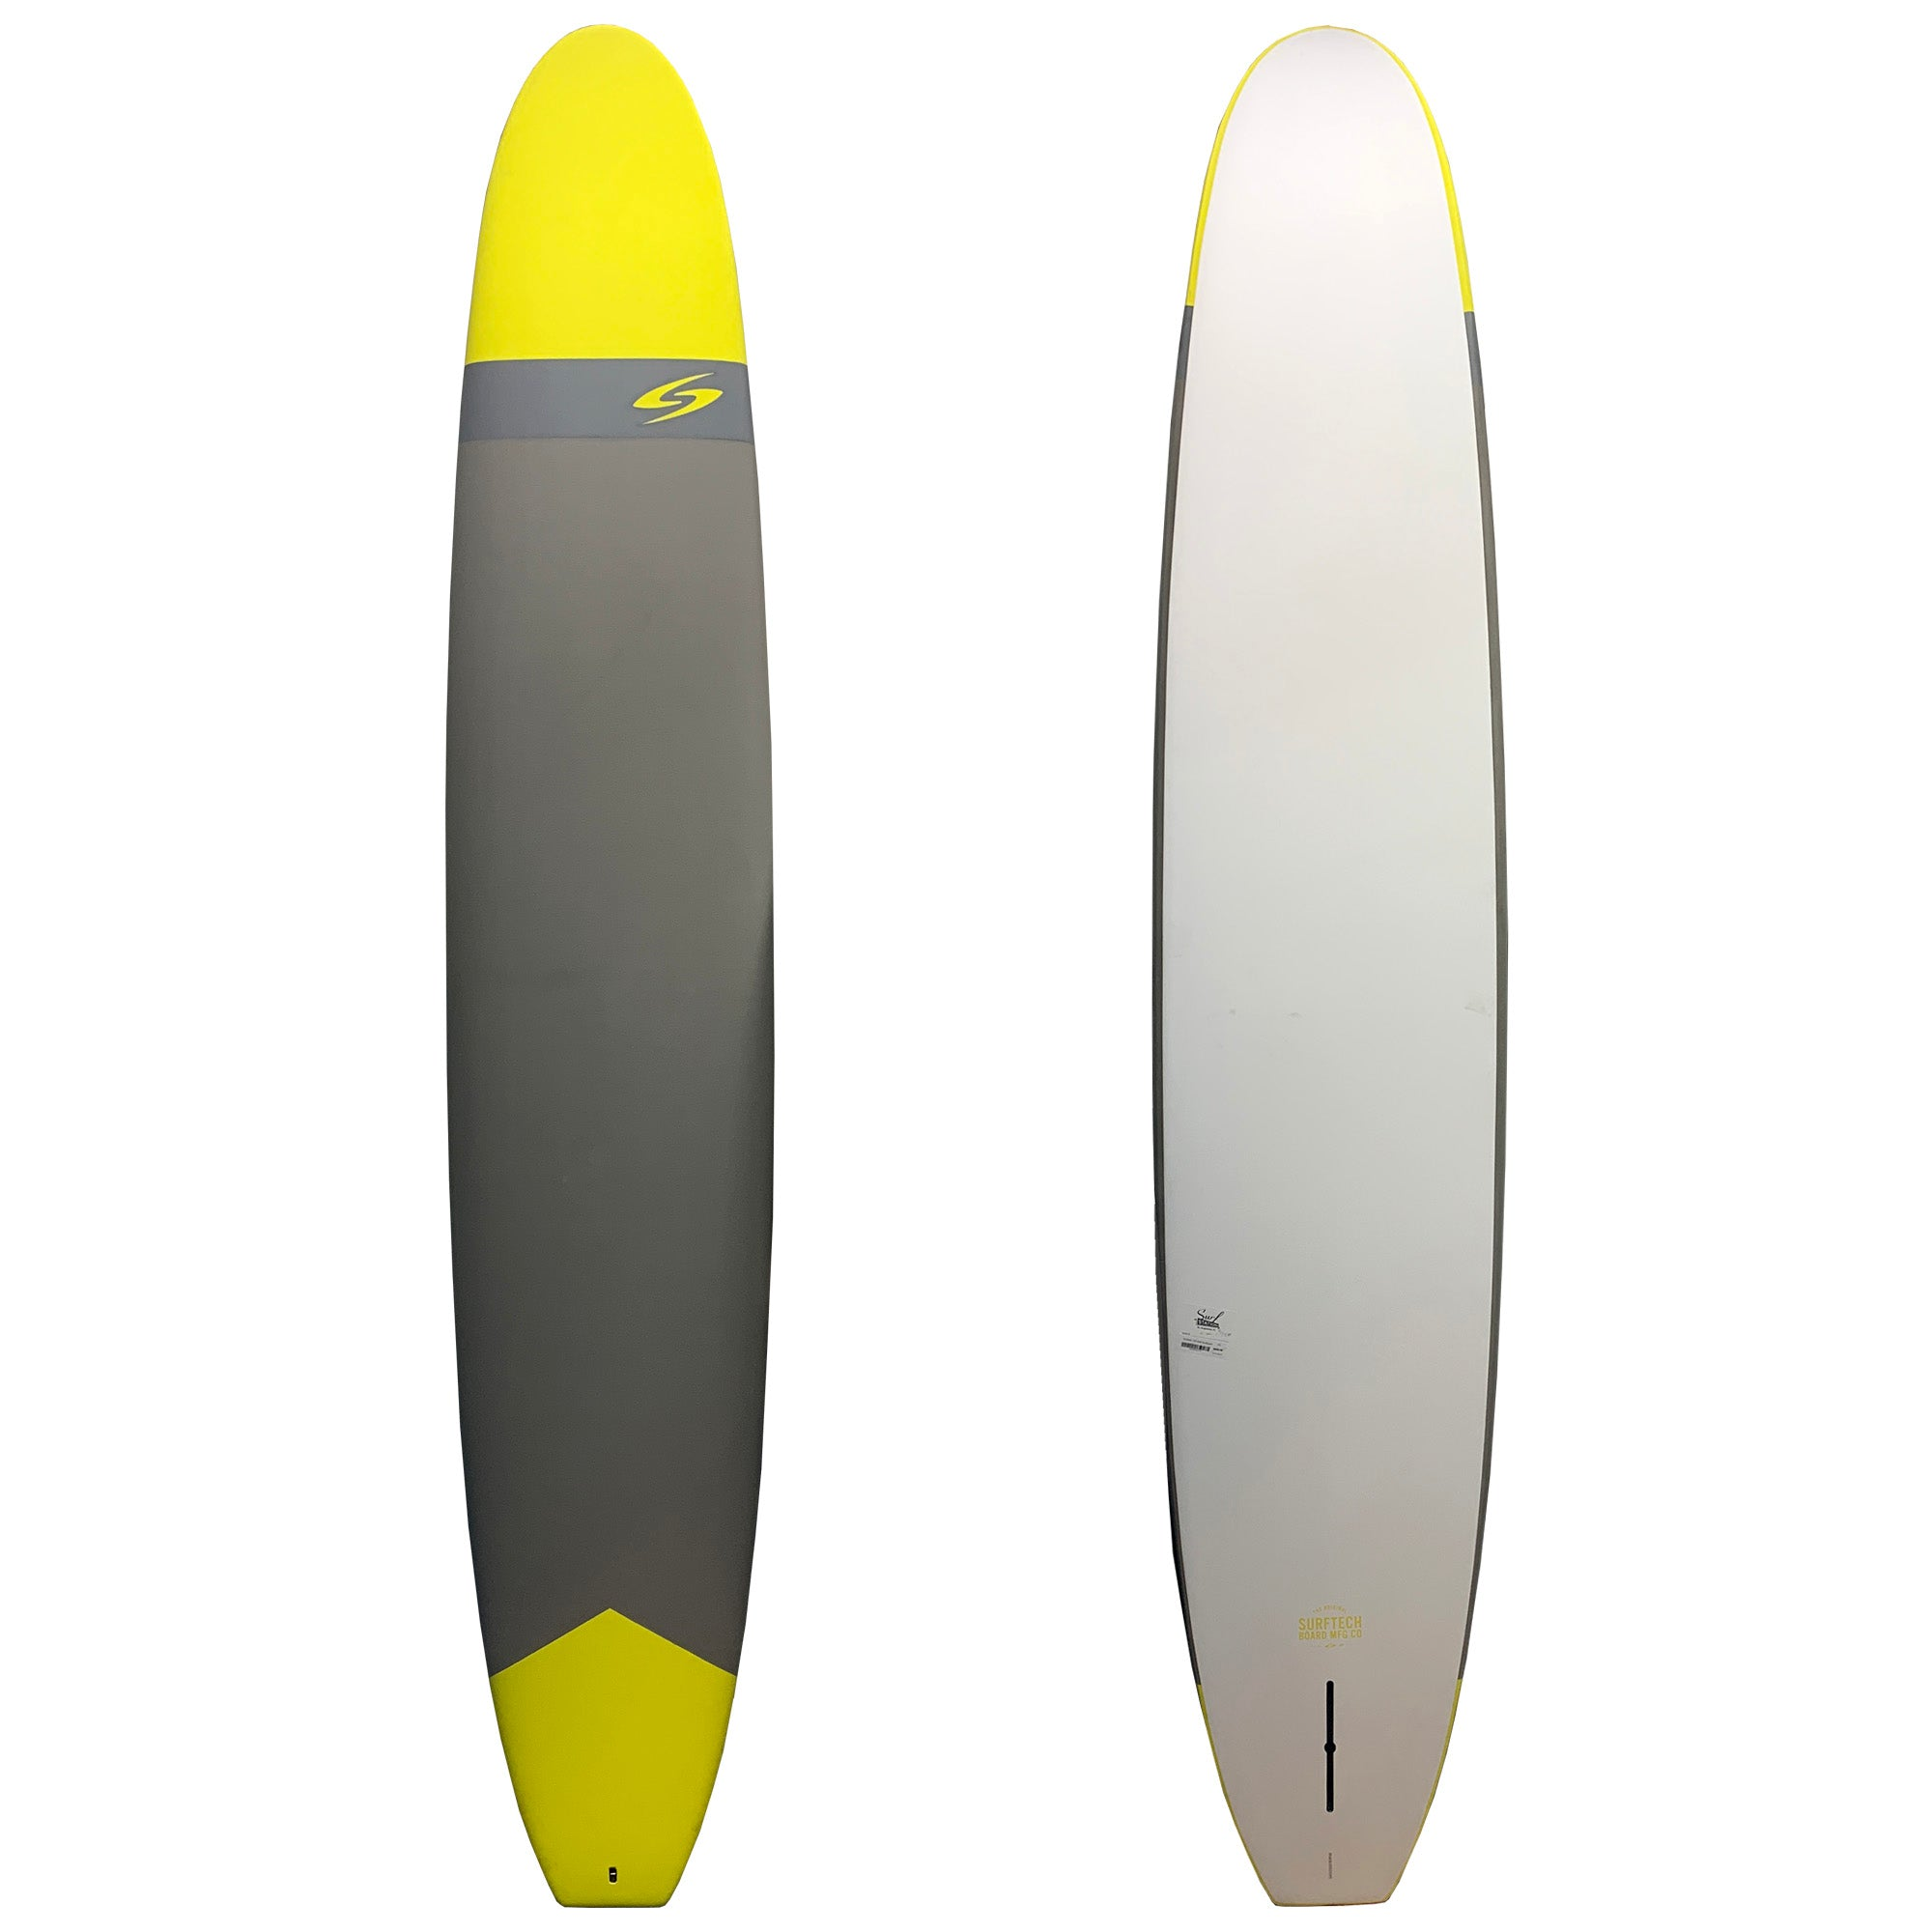 Surftech 12'0 Soft Surfboard